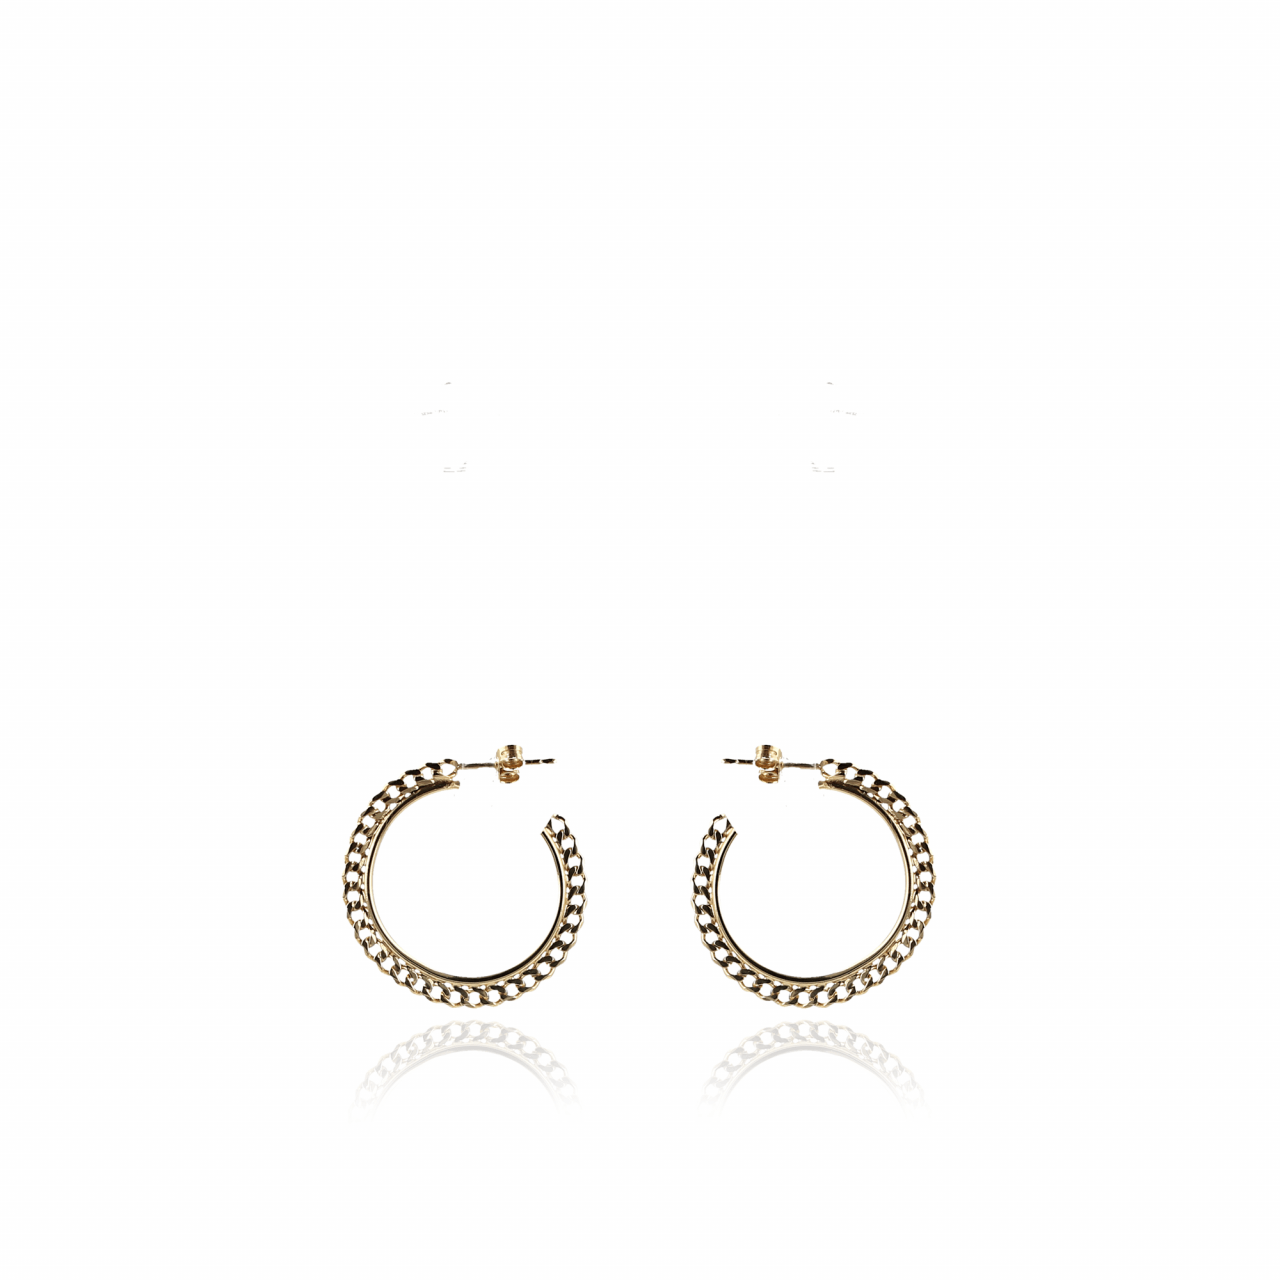 Golden creole chain S earrings